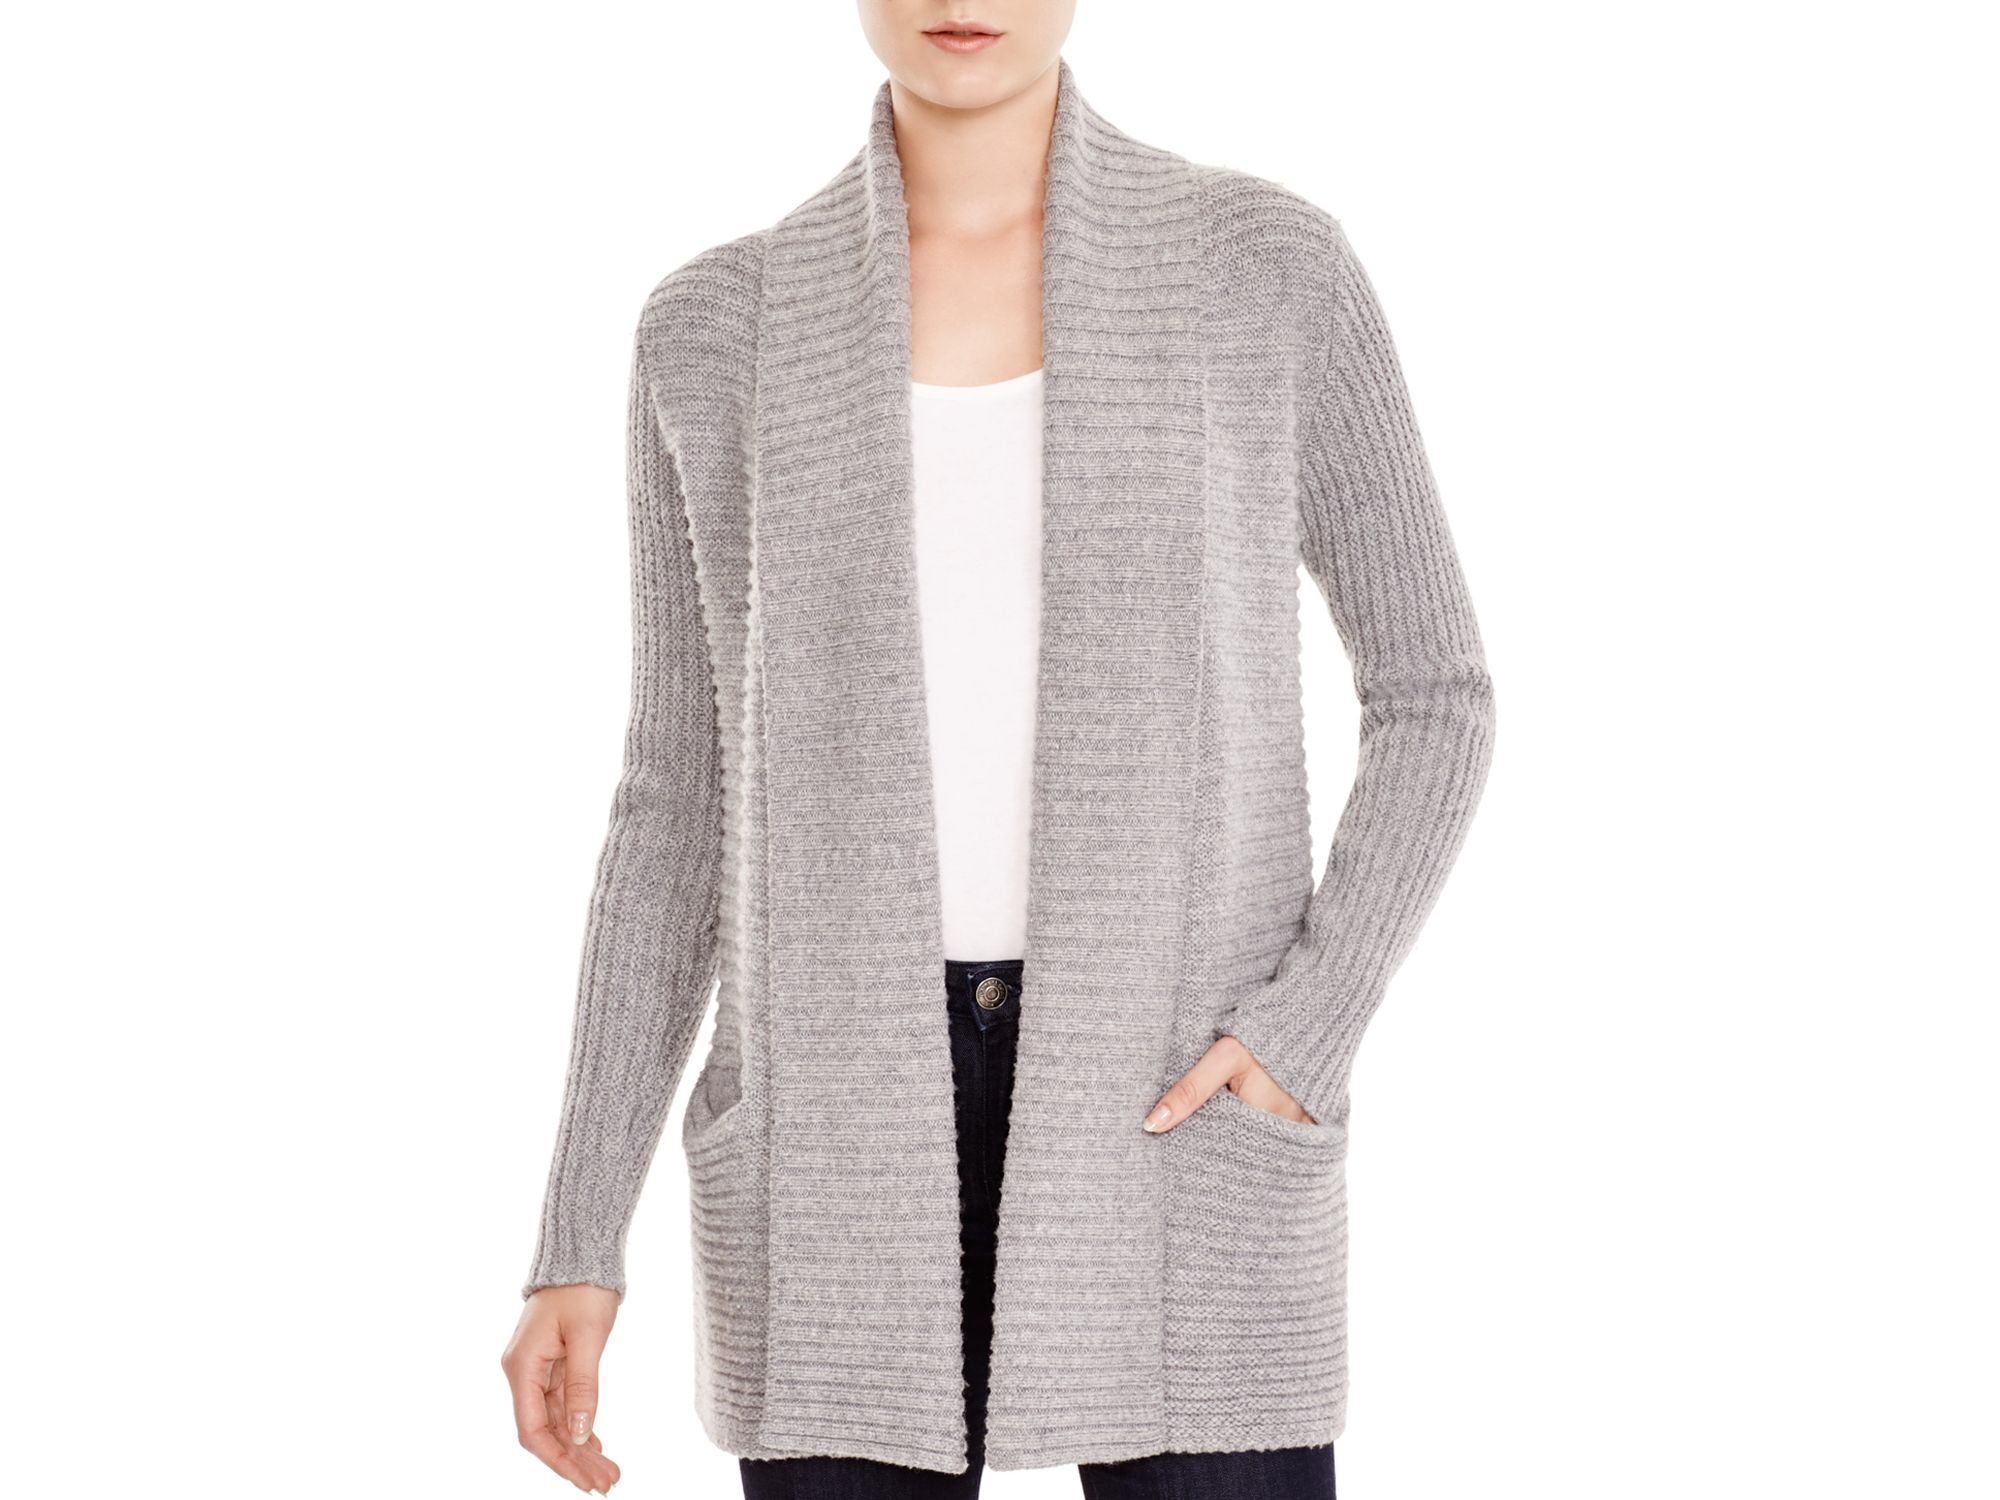 Soft joie Kanoa Open Cardigan in Gray | Lyst